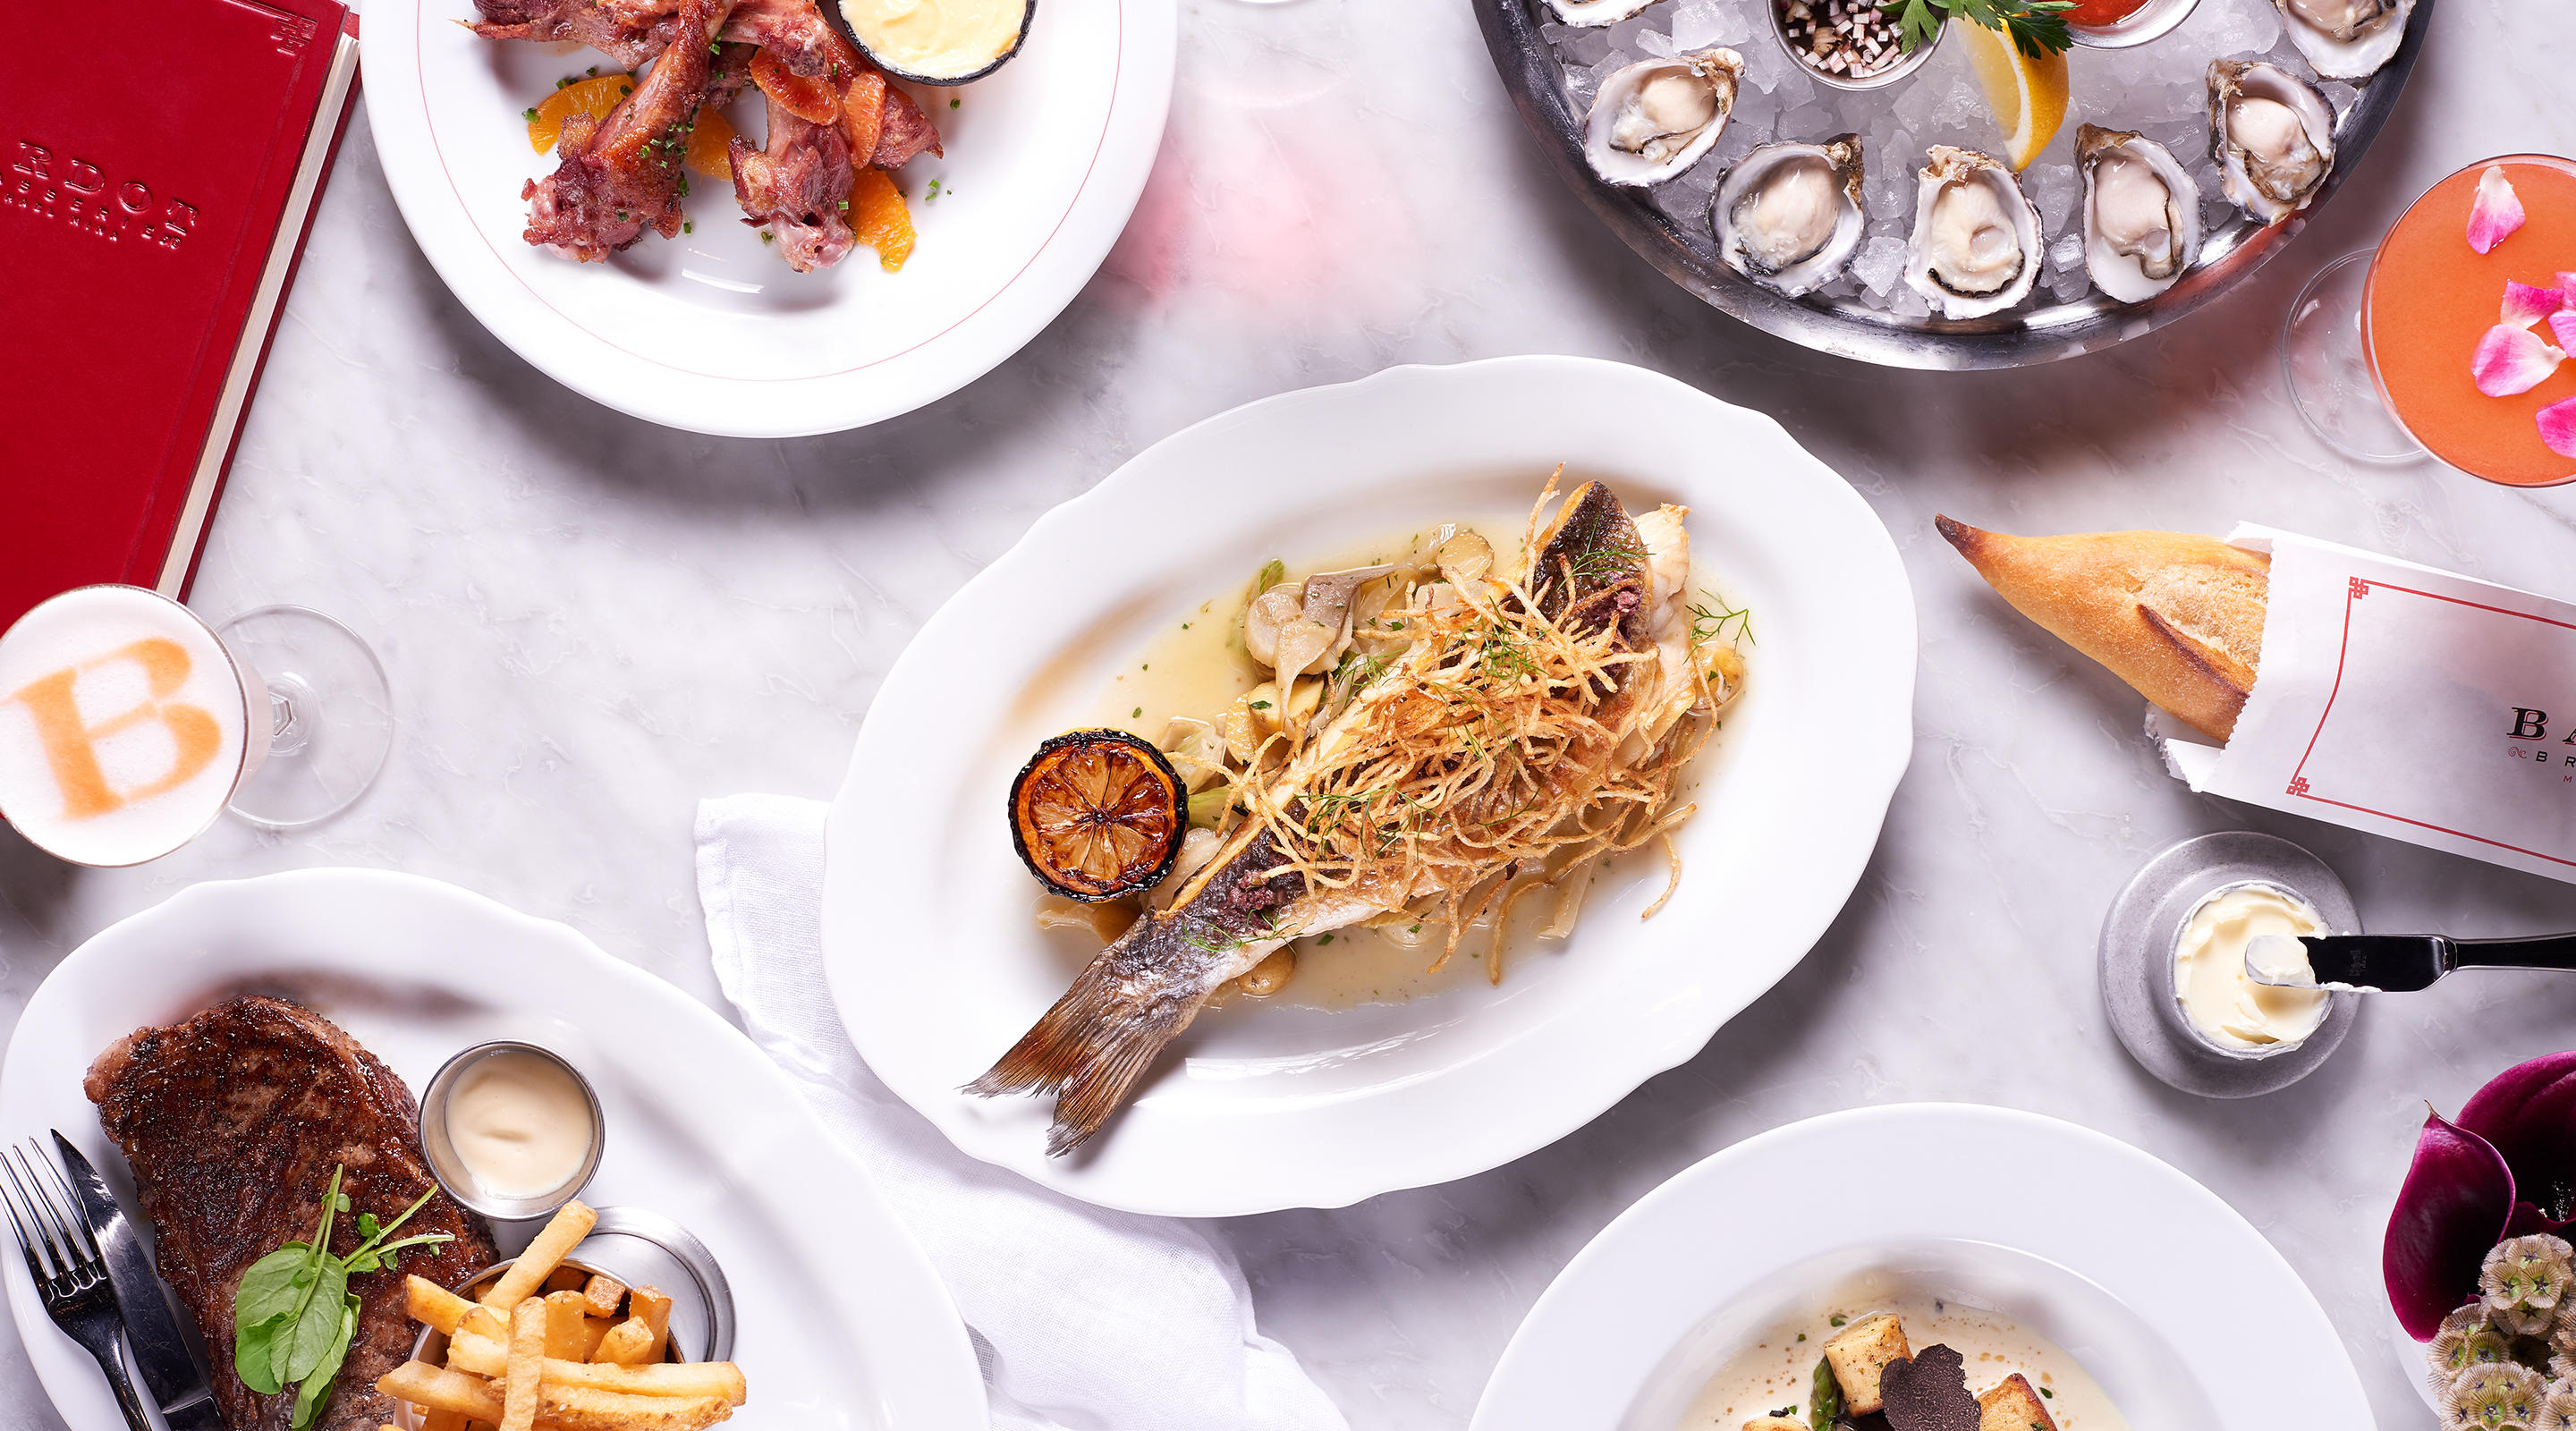 Classic brasserie fare is yours at BARDOT Brasserie.